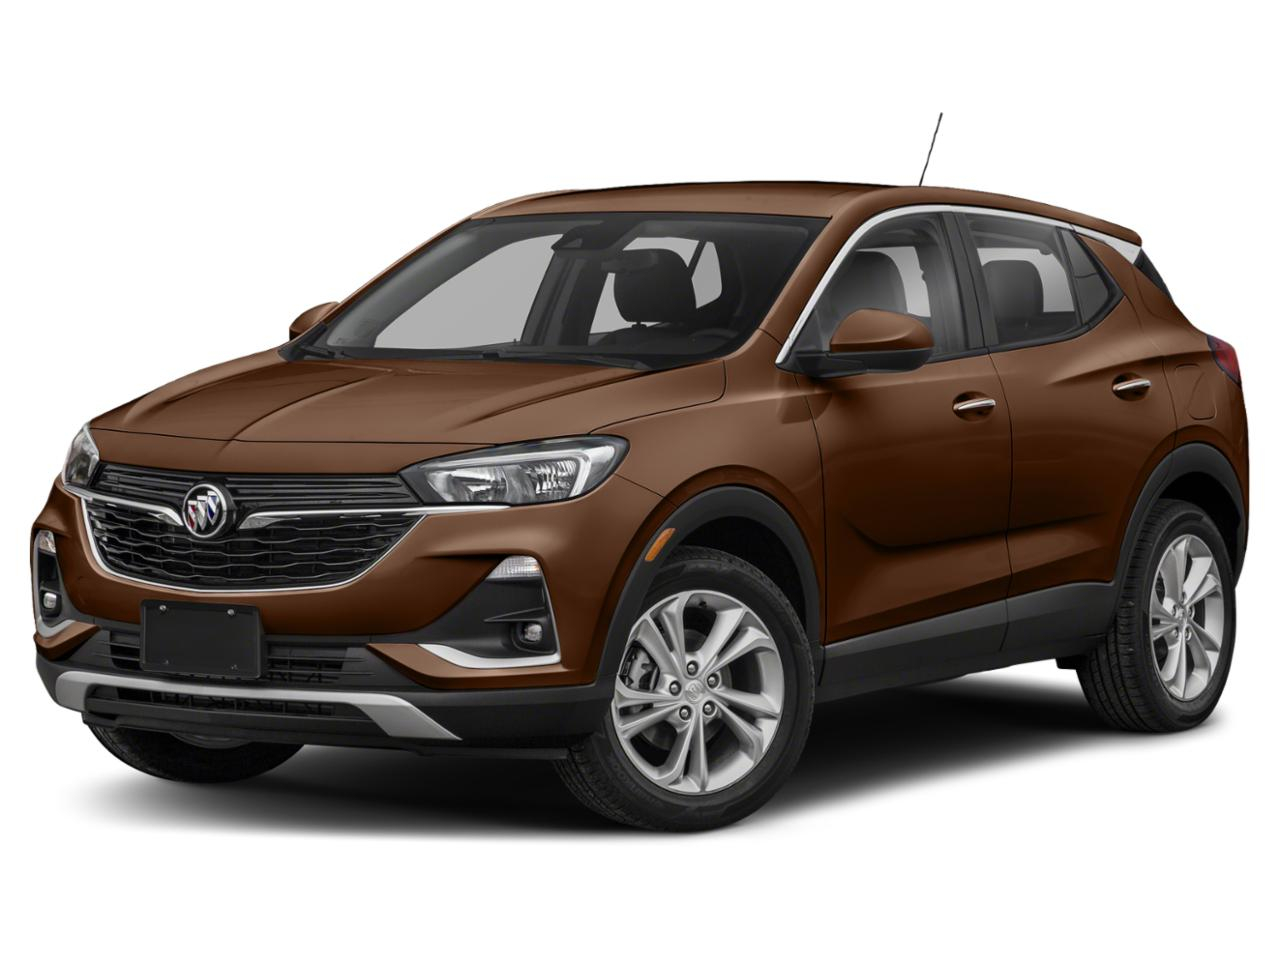 New 2020 Buick Encore Gx For Sale At Griffin Buick Gmc 2022 Buick Encore Gx Lease Price, Mpg, Msrp